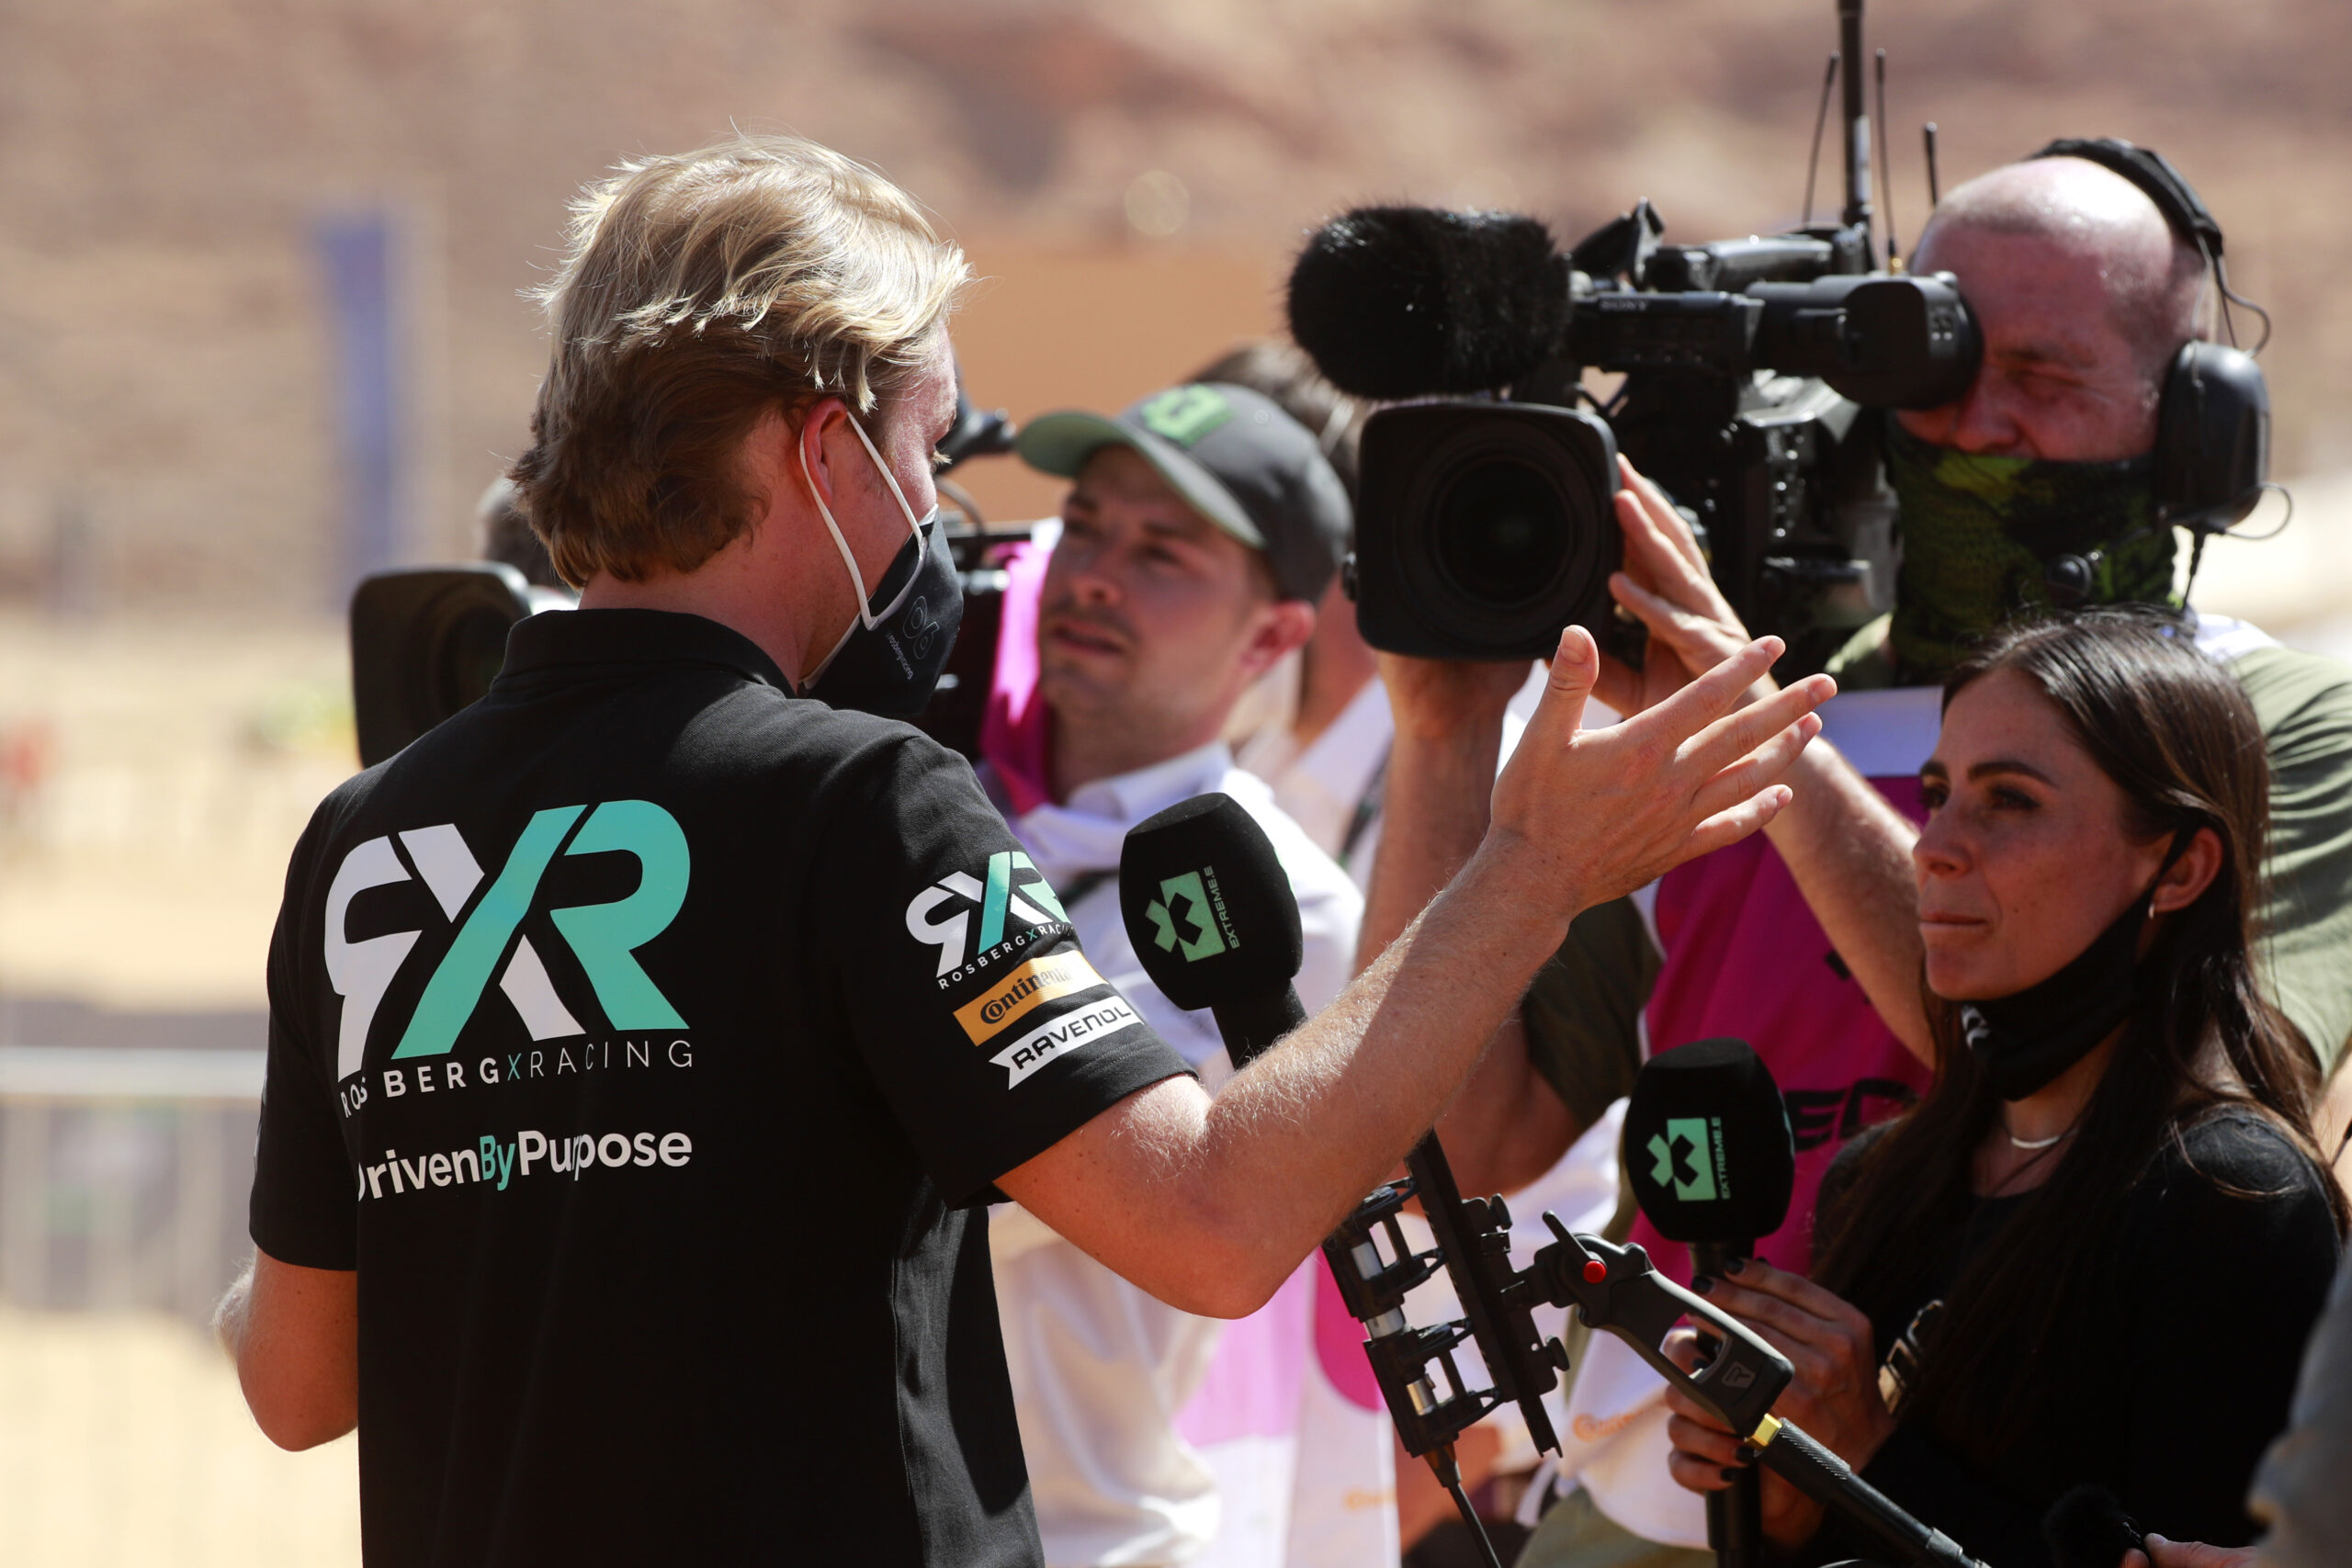 Nico Rosberg, founder and CEO, Rosberg X Racing, is interviewed by Extreme E during the Desert X-Prix,  April 04, 2021 in AlUla, Saudi Arabia. (Photo by Steven Tee / LAT Images)